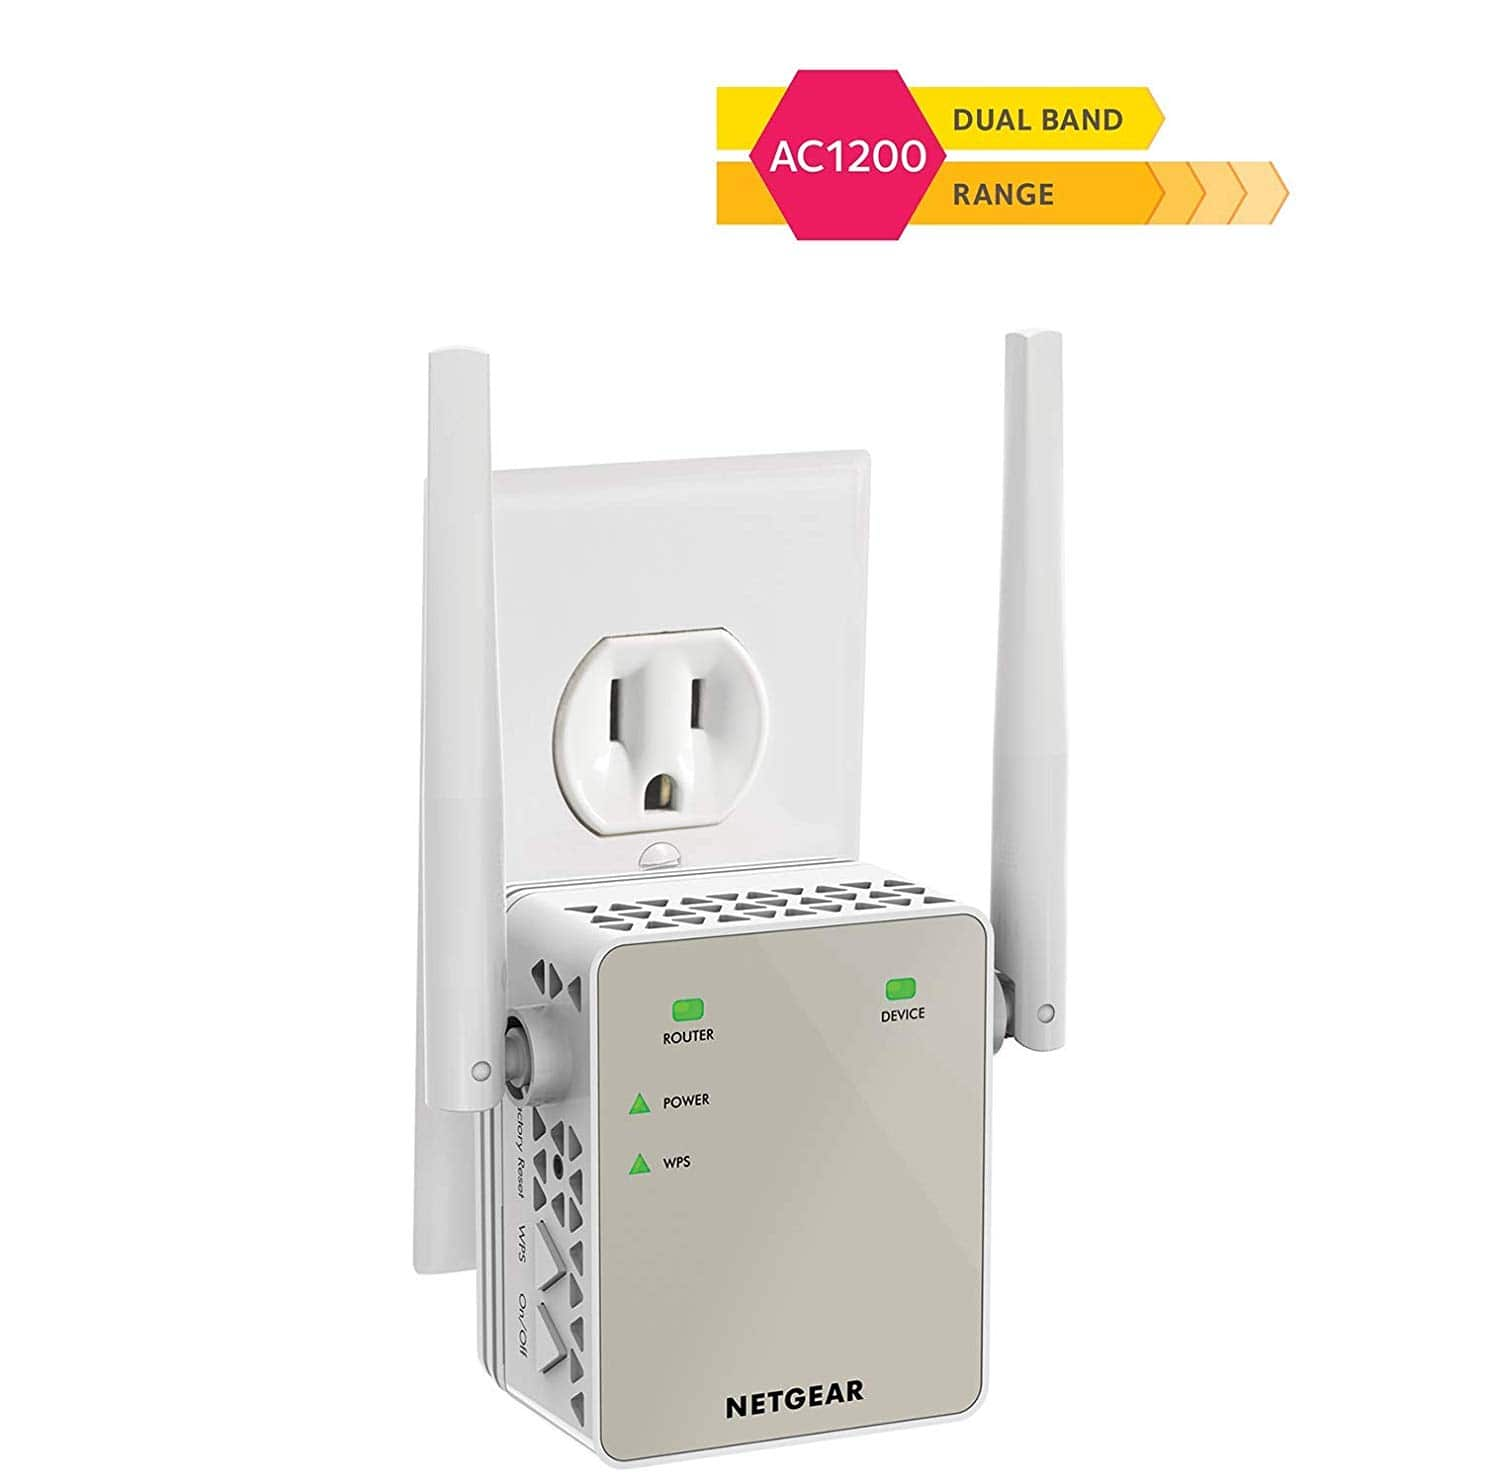 37% Off on NETGEAR Wi-Fi Range Extender EX6120 - Coverage up to 1200 sq.ft. and 20 devices with AC1200 Dual Band Wireless Signal Booster & Repeater $35.99